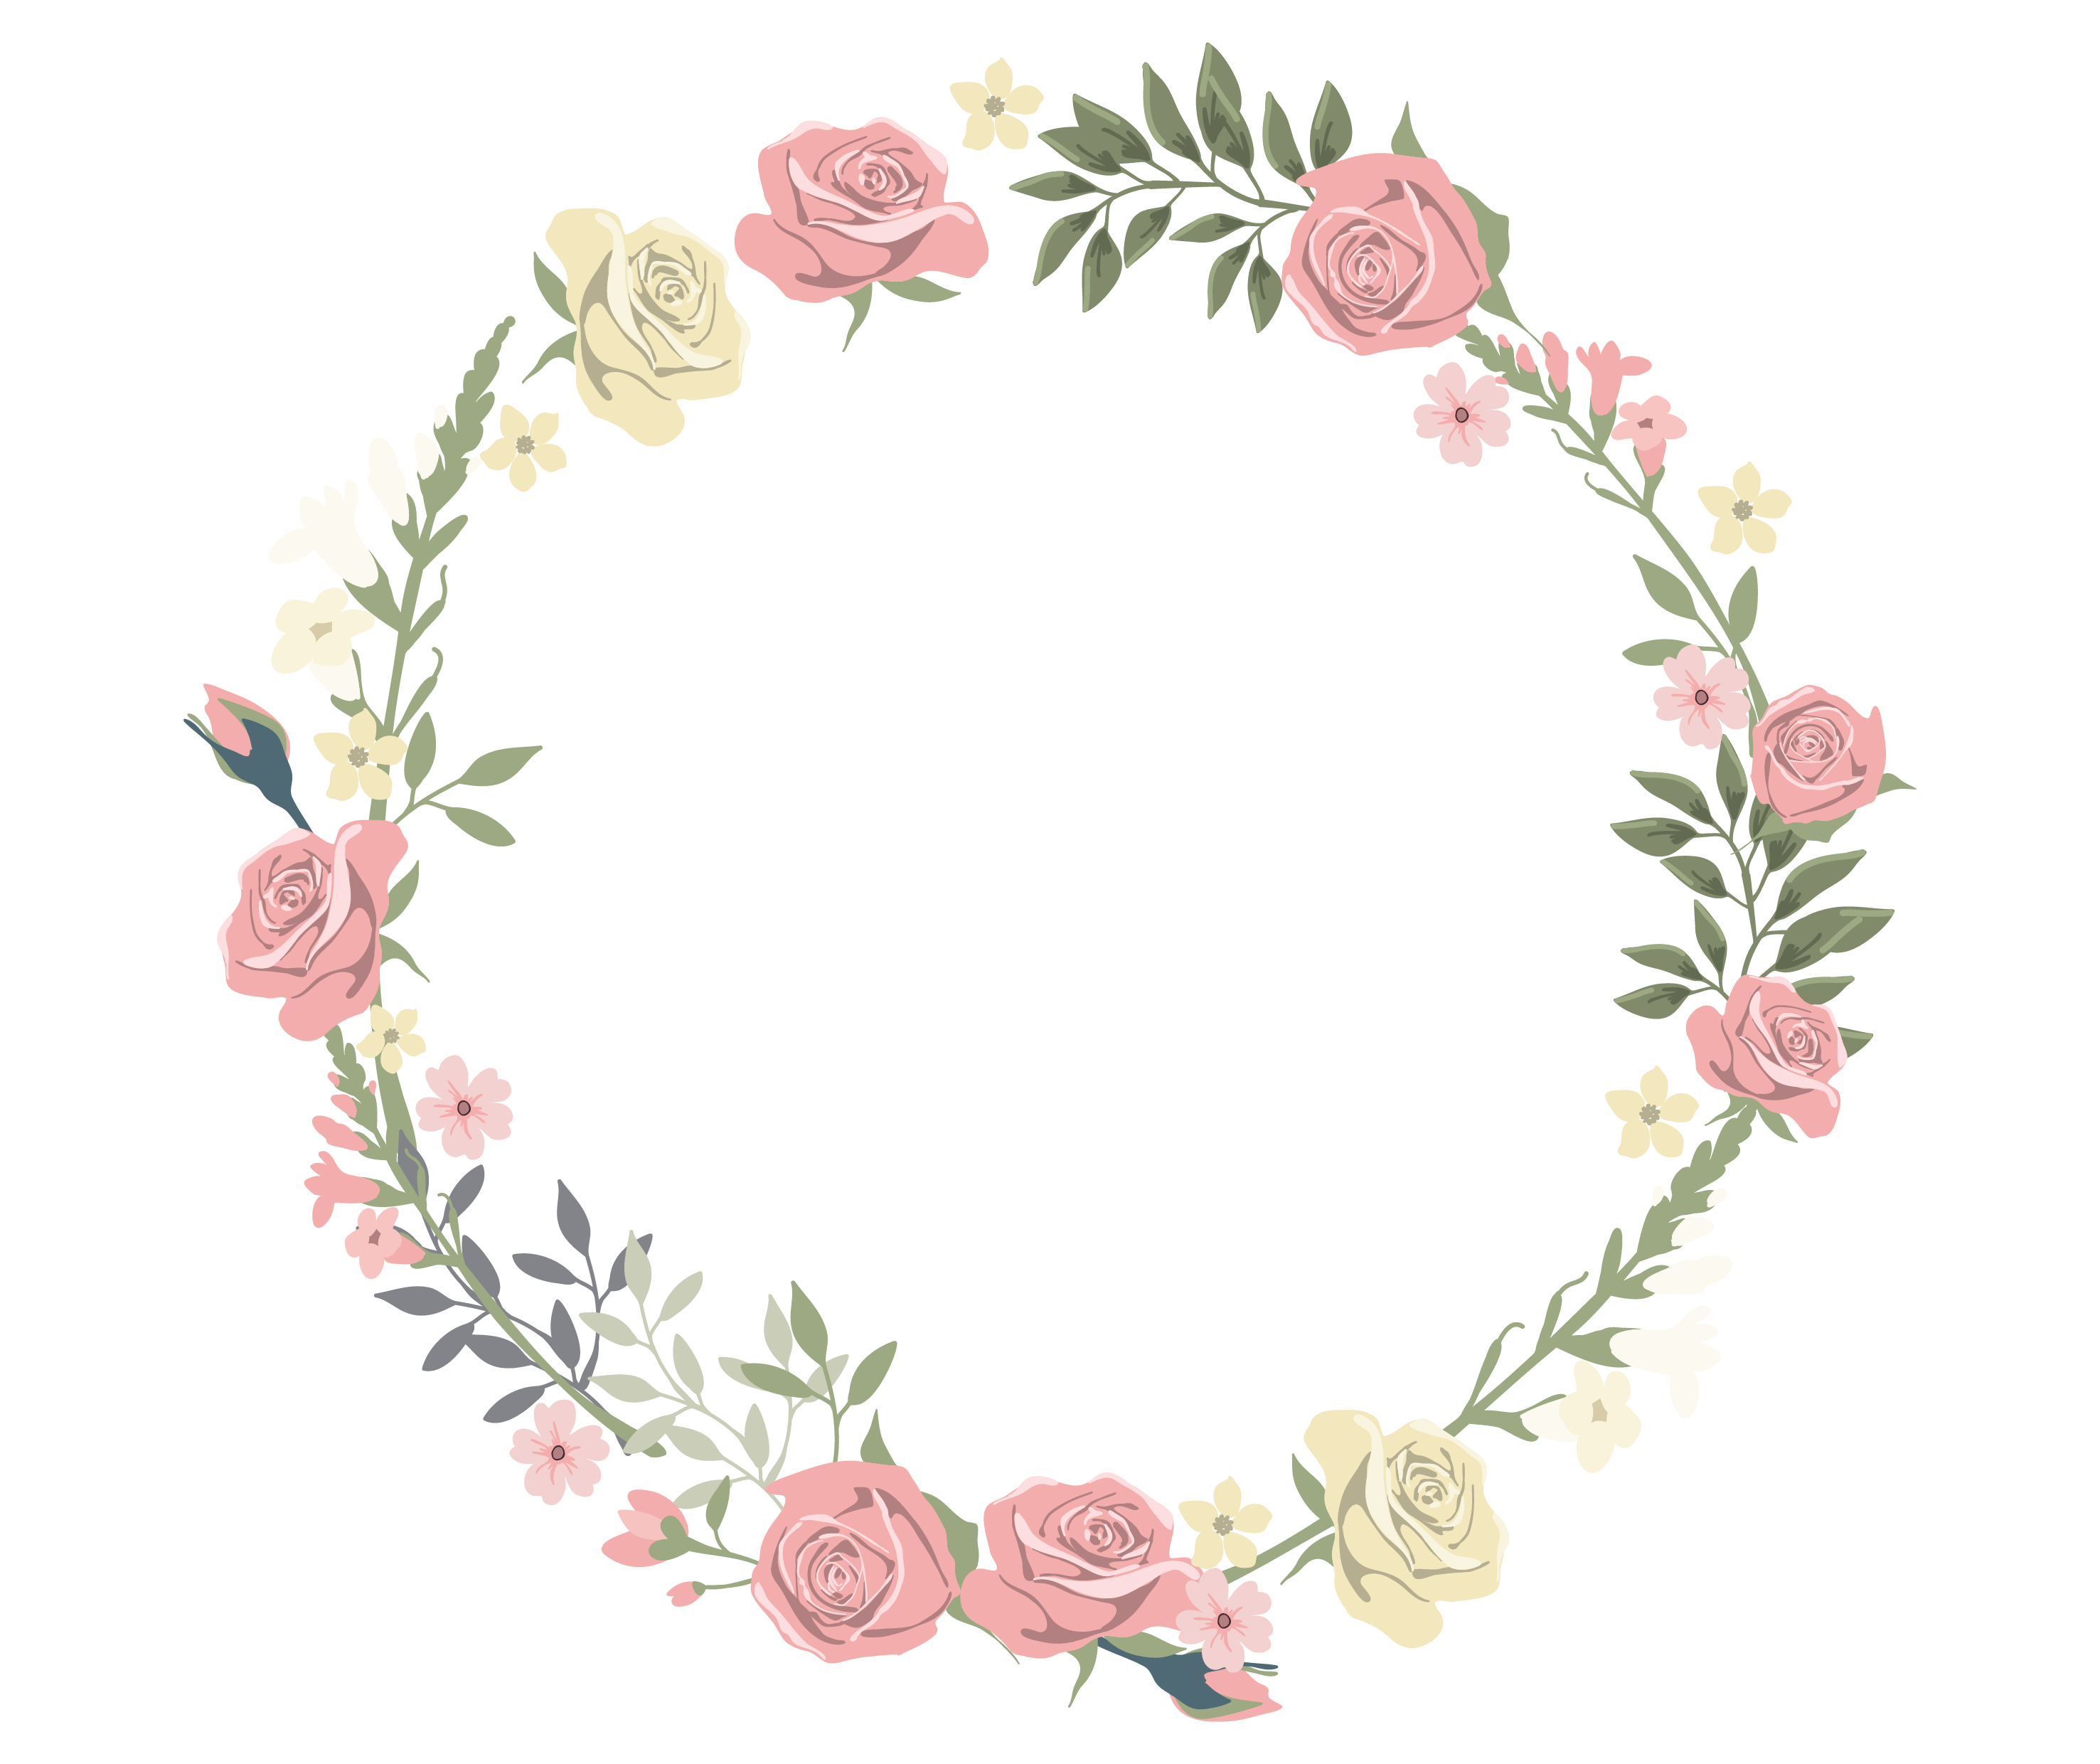 Blush pink flower clipart jpg freeuse library Похожее изображение | Этикетки и рамки | Pinterest | Wallpaper ... jpg freeuse library